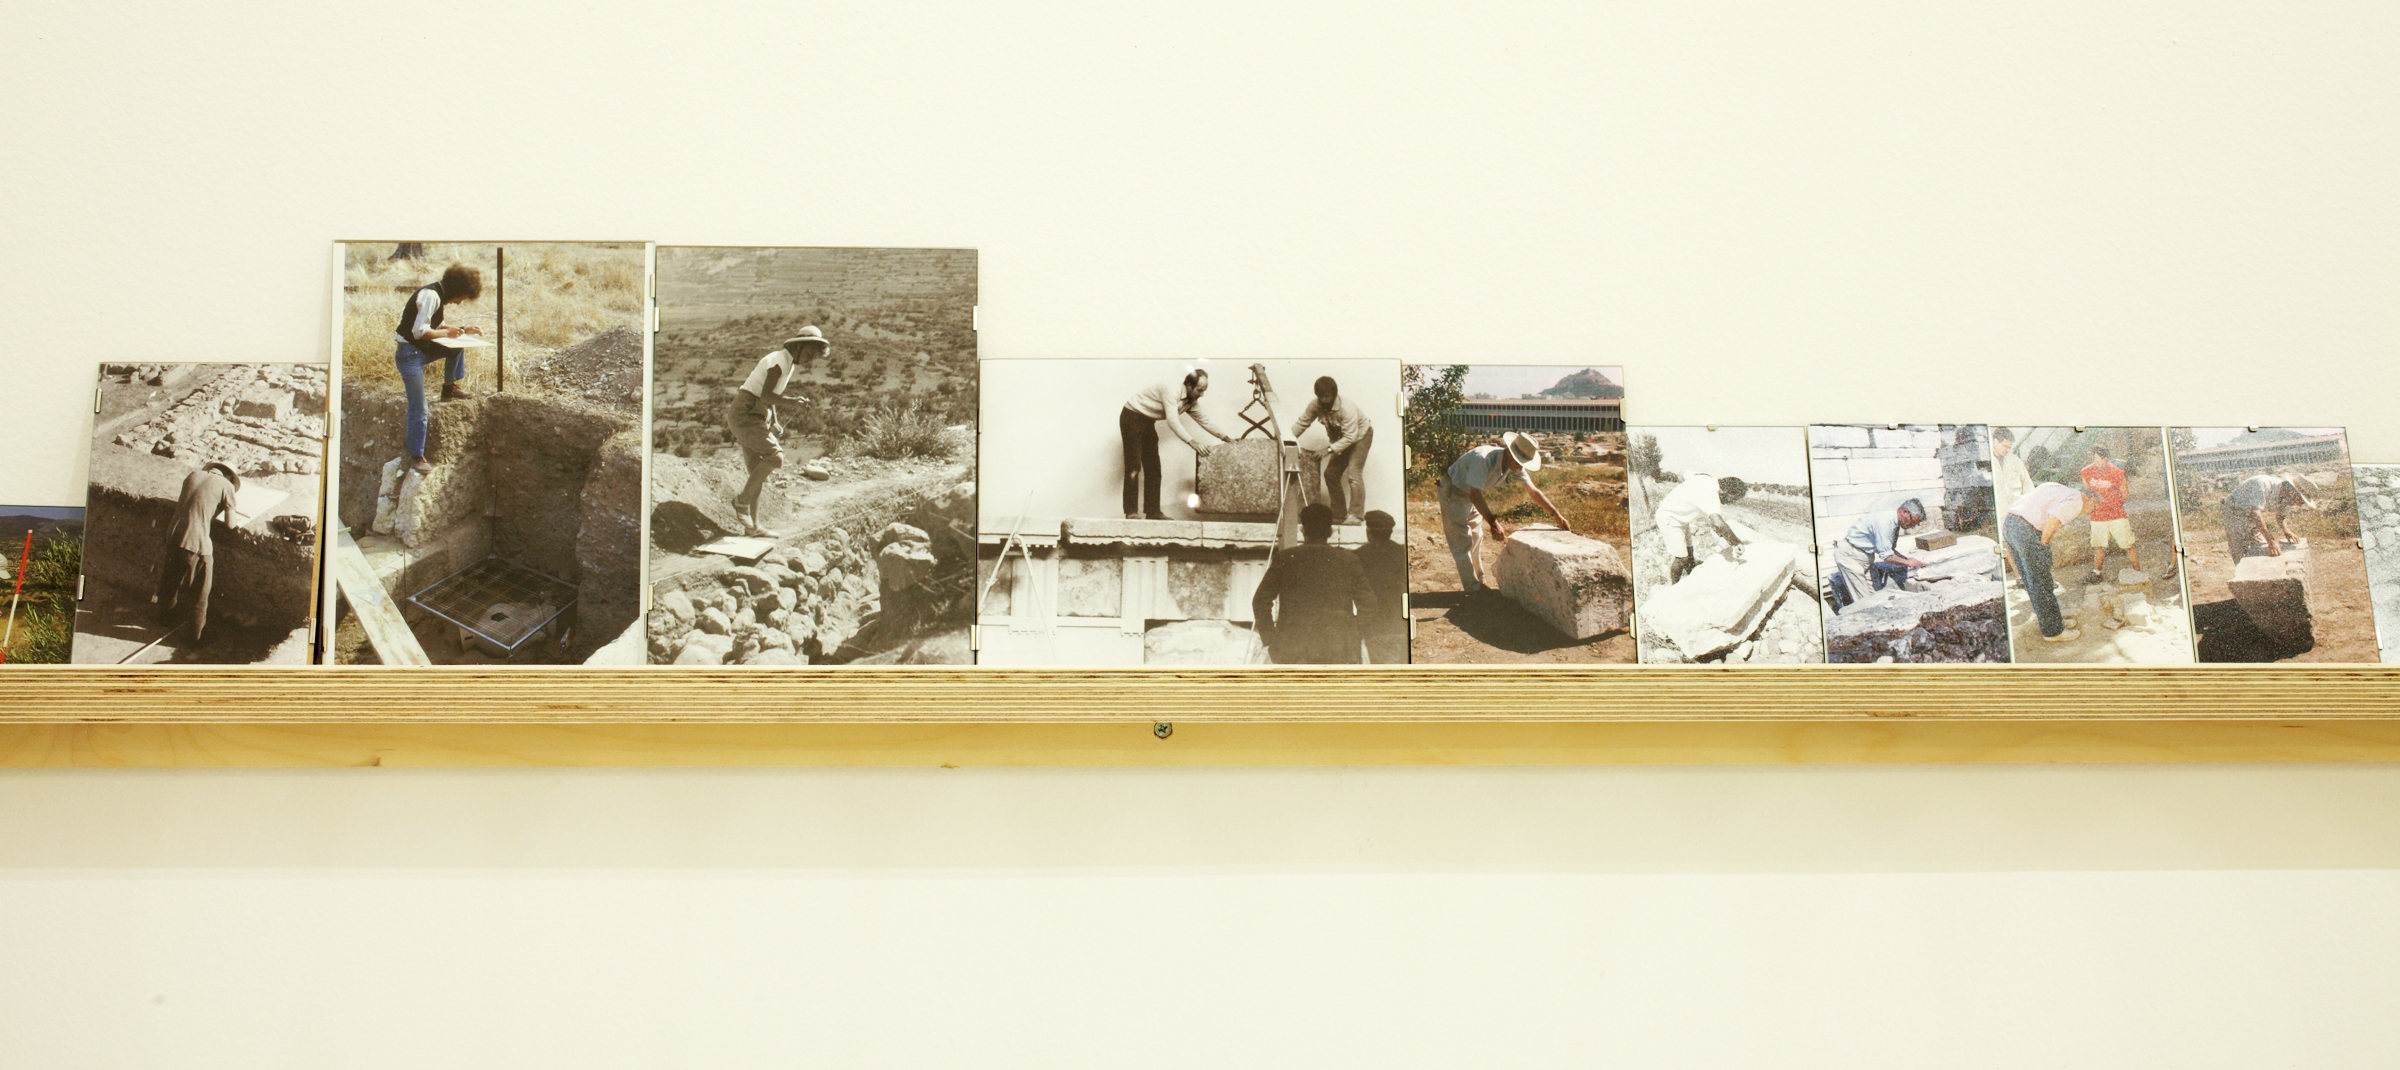 Vangelis Vlahos, Foreign archaeologists from standing to bending position (detail), 2012, 53 framed photos (variable dimensions) on a wall mounted shelf, 27'. Photo: Vivianna Athanassopoulou.